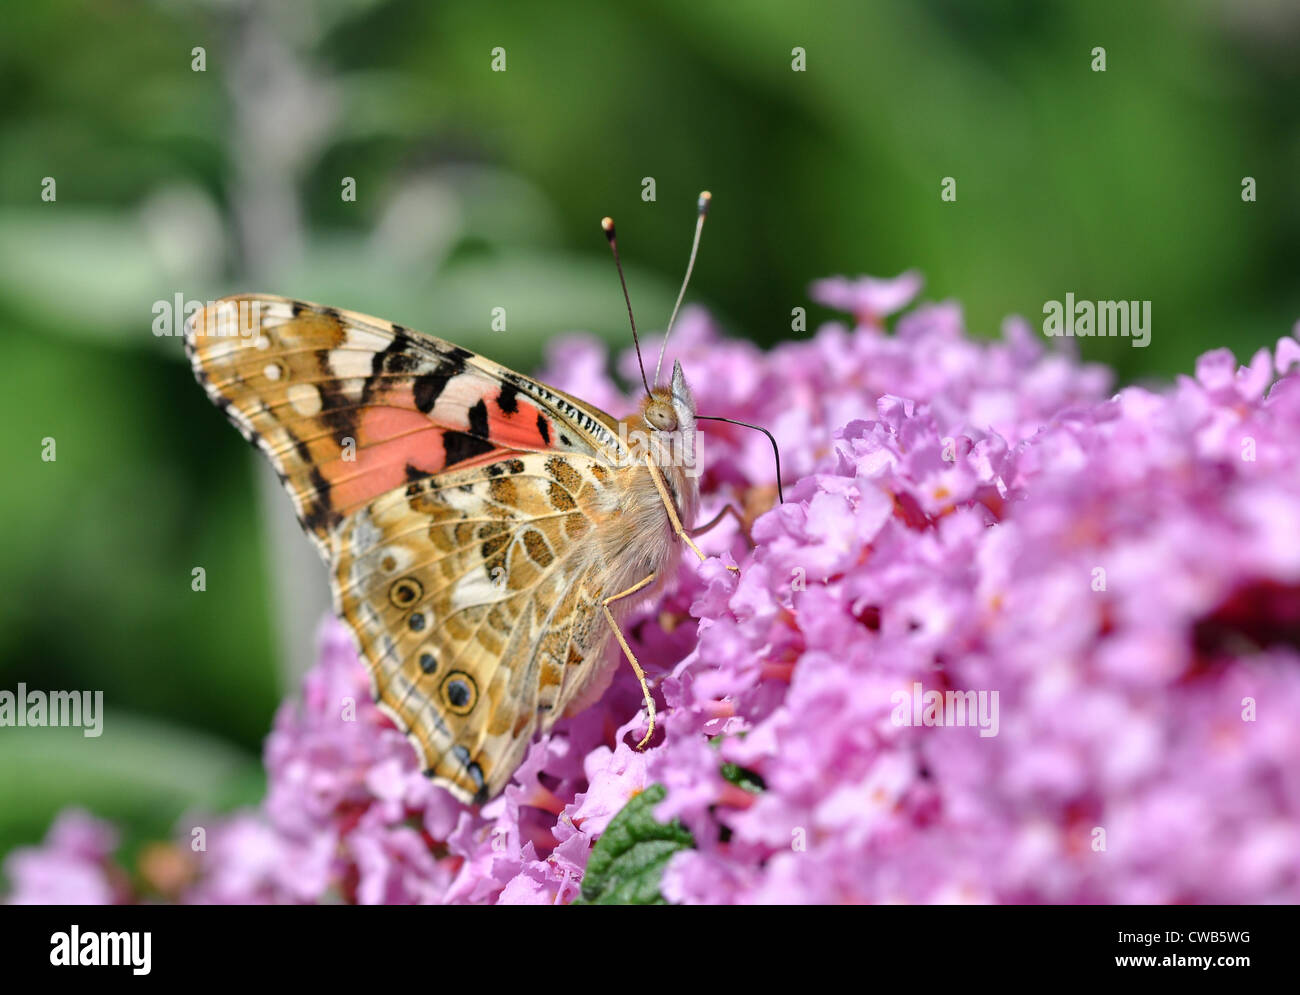 A butterfly on Lilac flower. - Stock Image